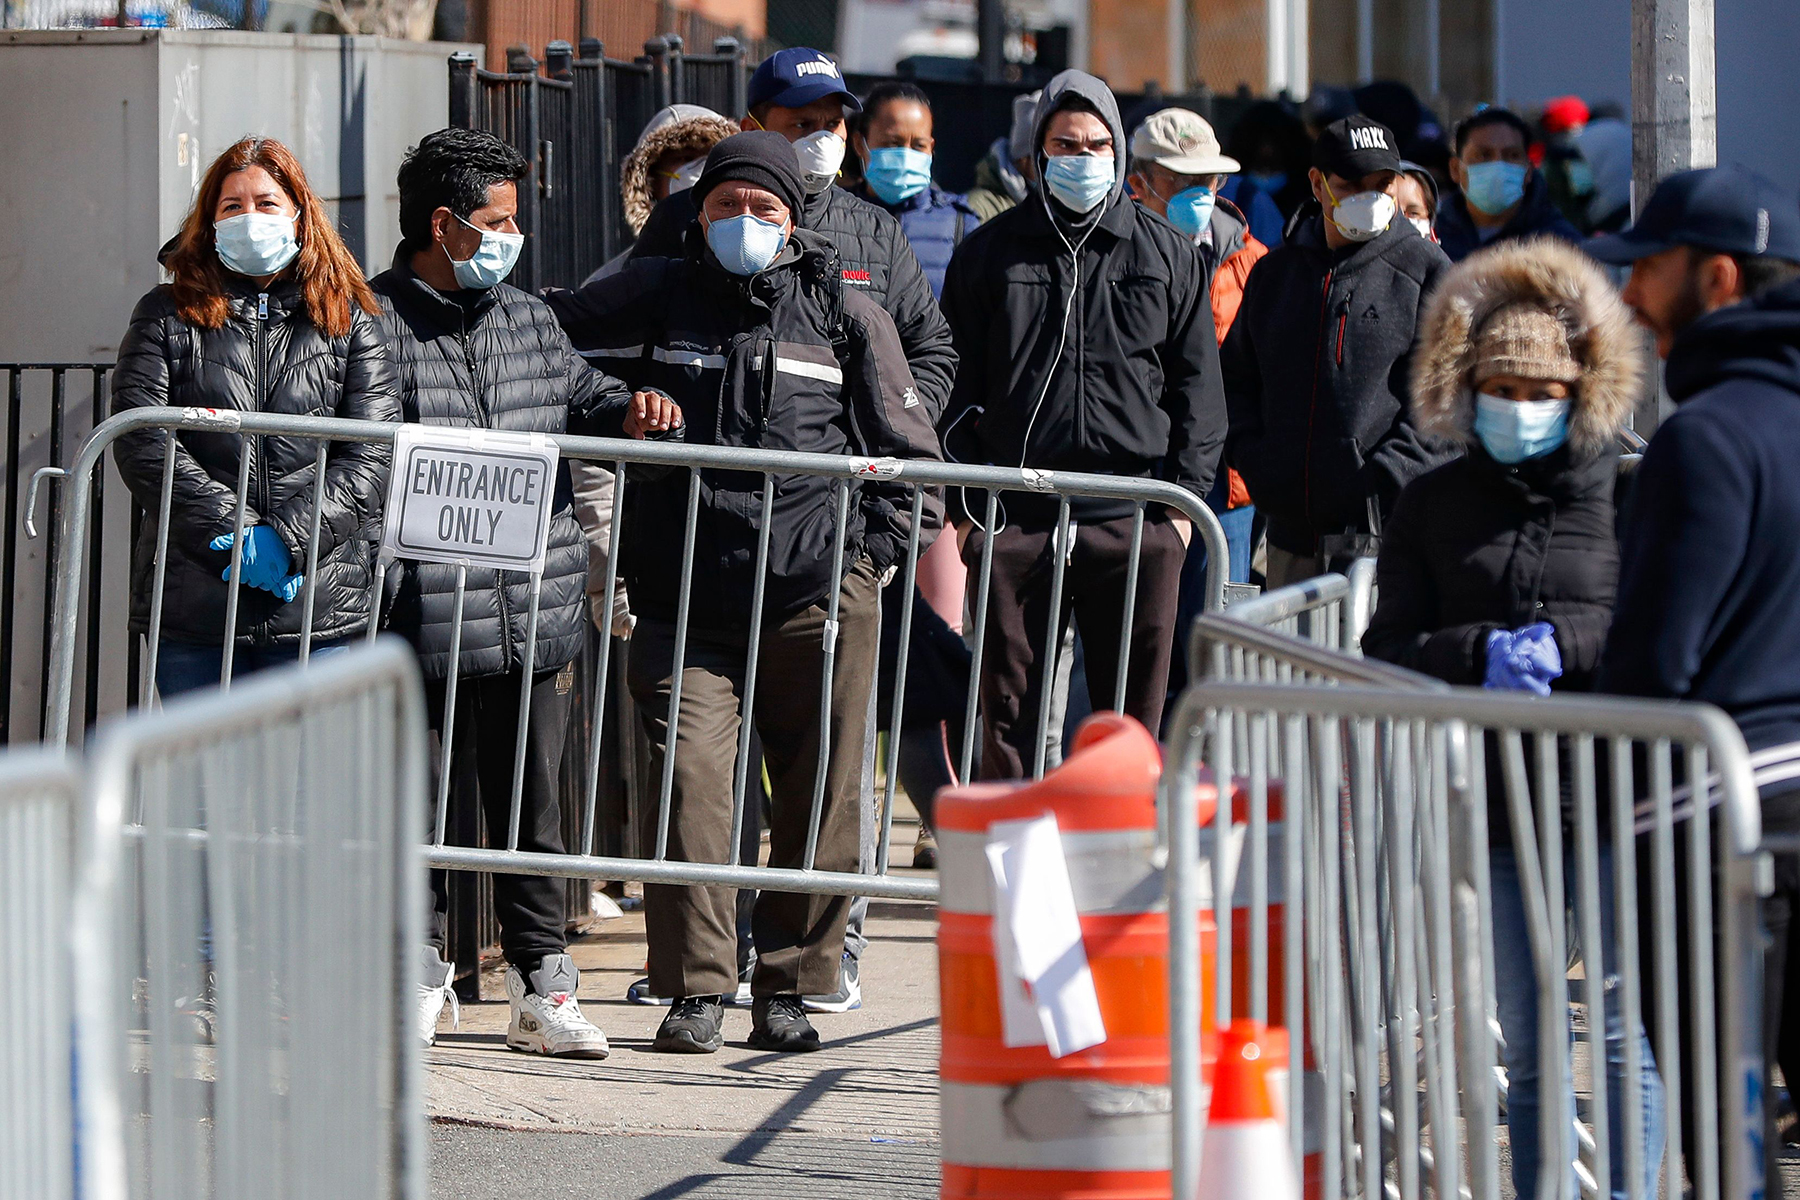 Patients wearing face masks and personal protective equipment wait on line for COVID-19 testing outside Elmhurst Hospital Center, in New York. The new coronavirus causes mild or moderate symptoms for most people, but for some, especially older adults and people with existing health problems, it can cause more severe illness or deathVirus Outbreak , New York, United States - 27 Mar 2020